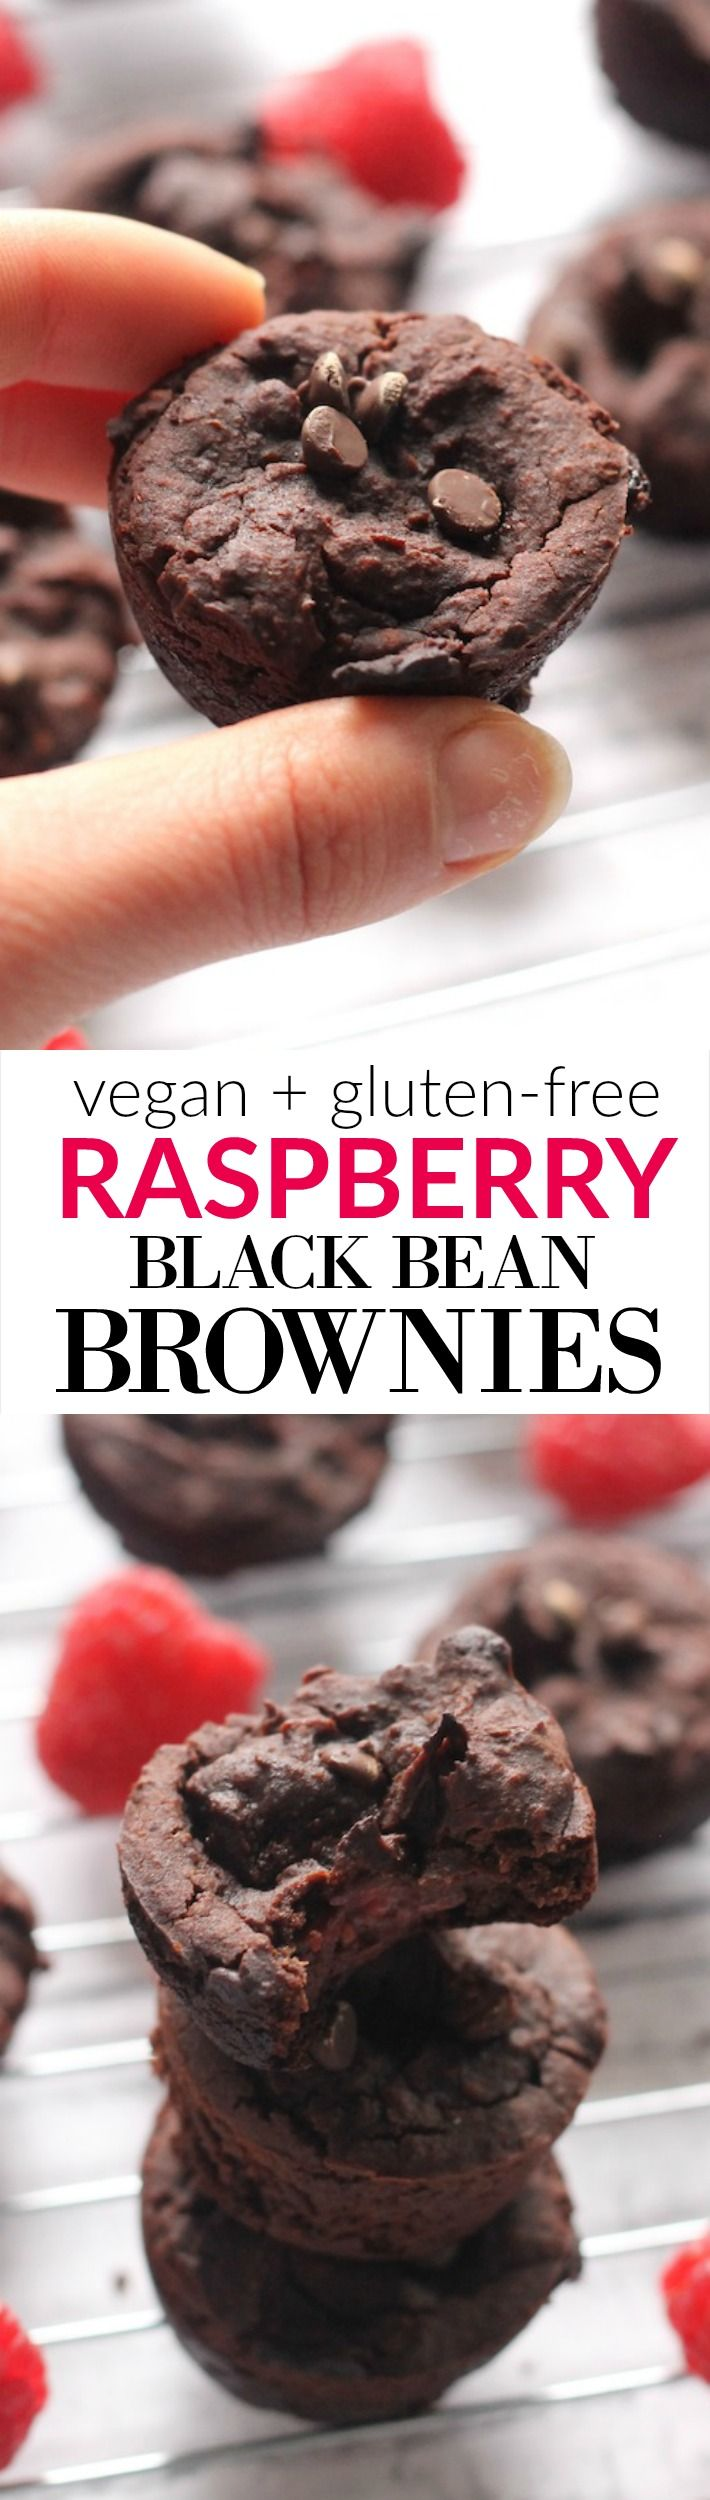 Vegan Raspberry Black Bean Brownie Bites + The Best Date Night Idea | Hummusapien